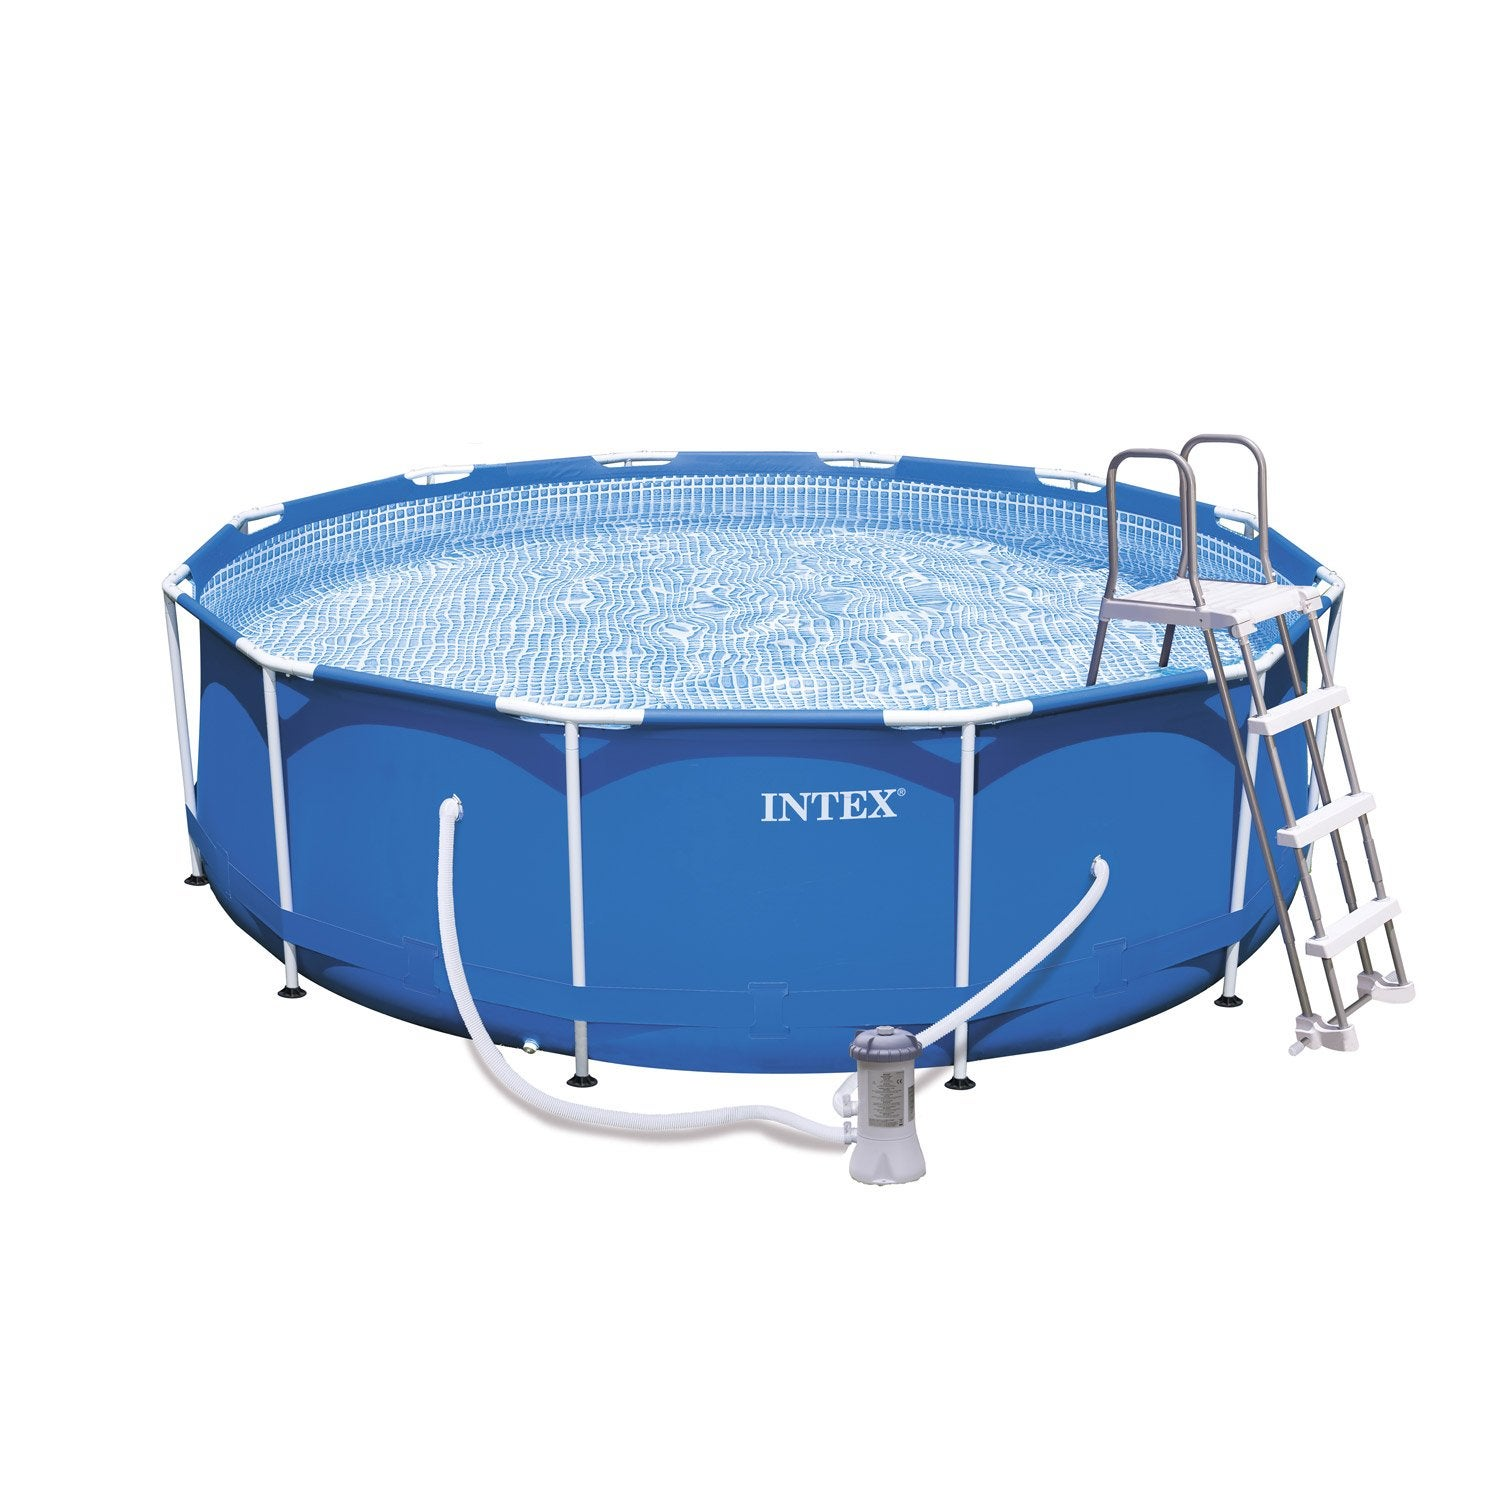 Piscine hors sol autoportante tubulaire m tal frame intex for Hors sol tubulaire